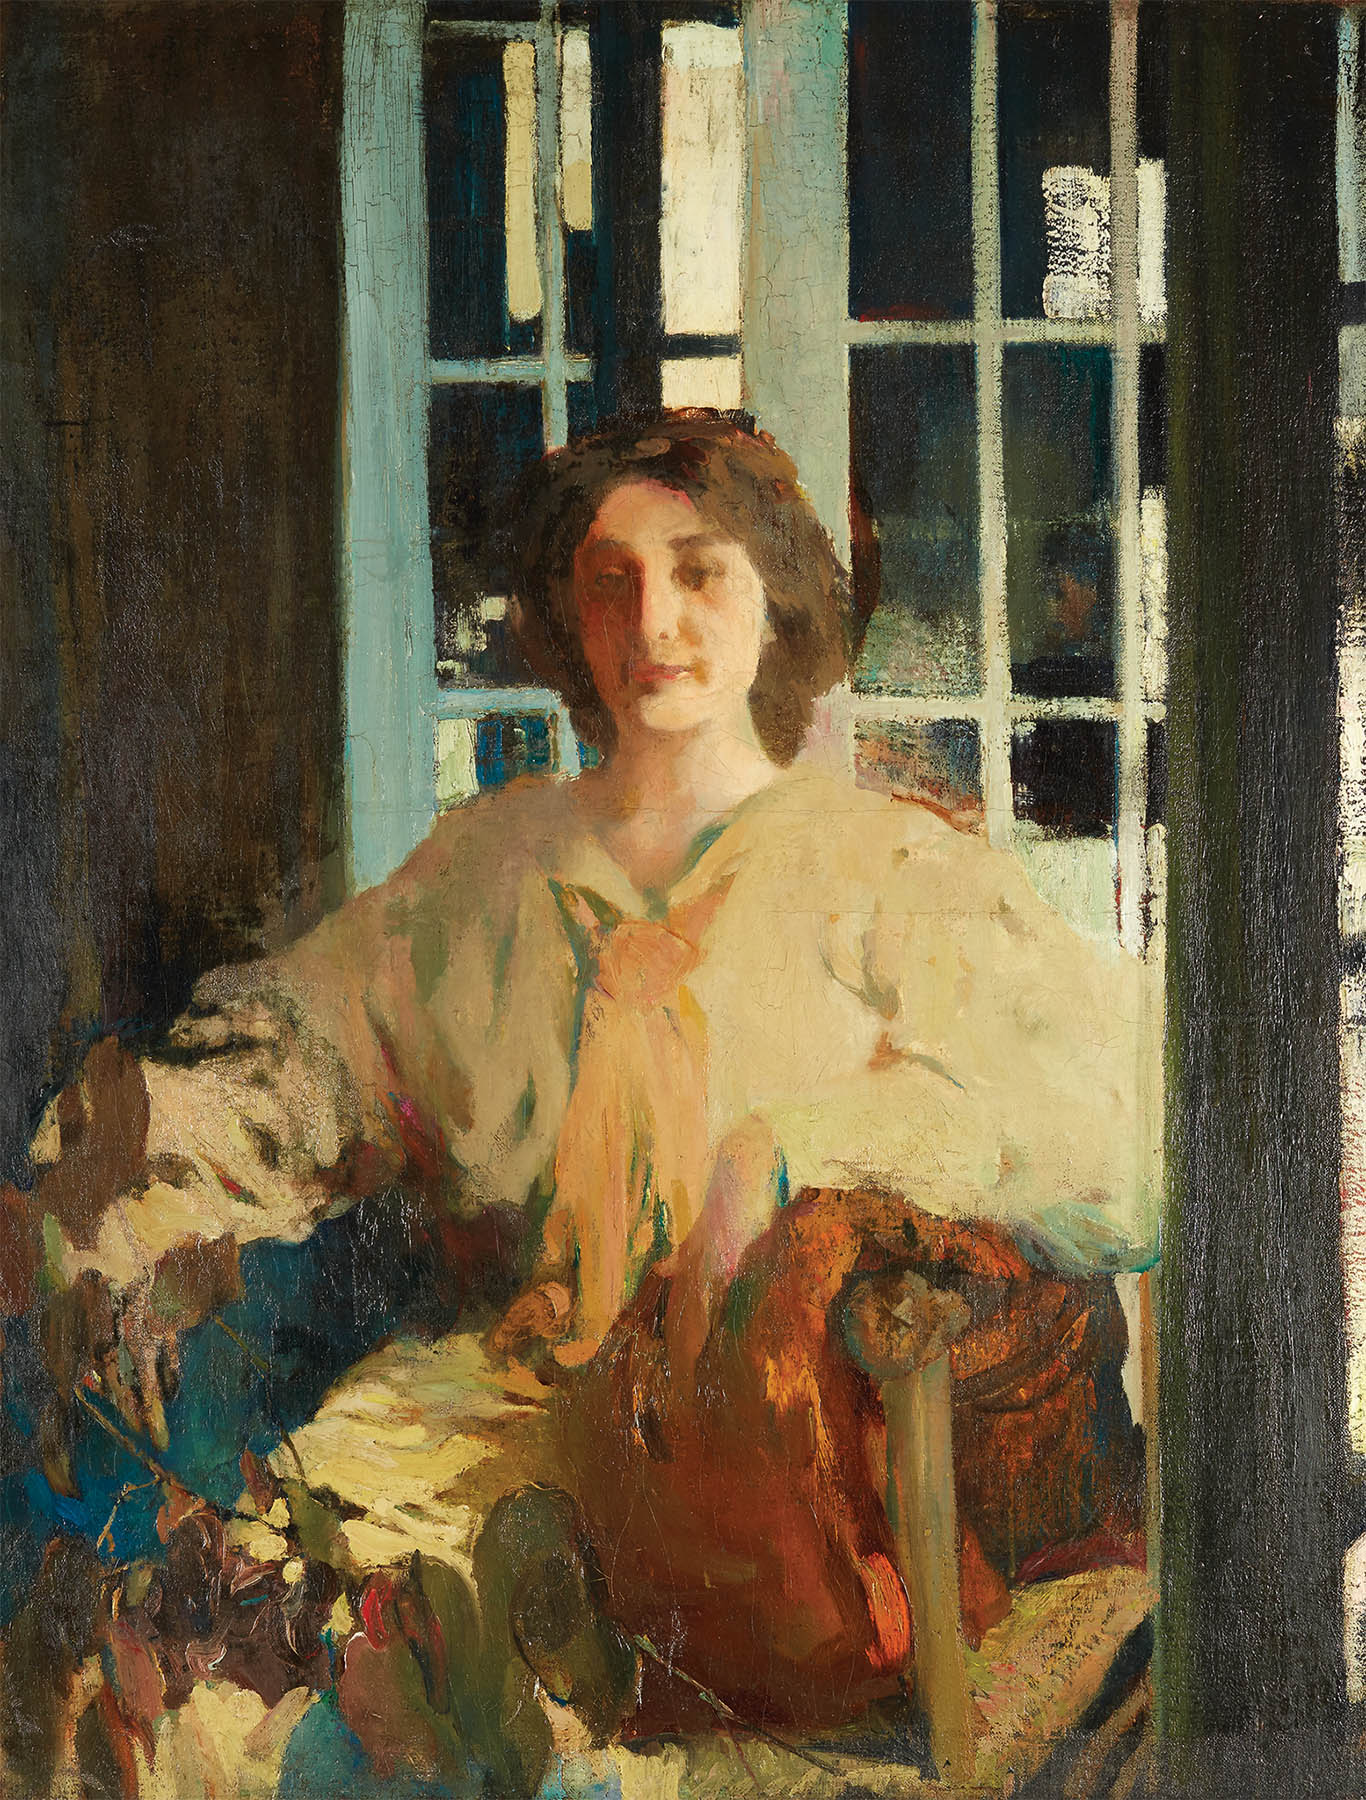 Lot 29 | Arthur Beecher Carles (American 1882-1952), Mlle de C., oil on canvas-SOLD FOR $27,500